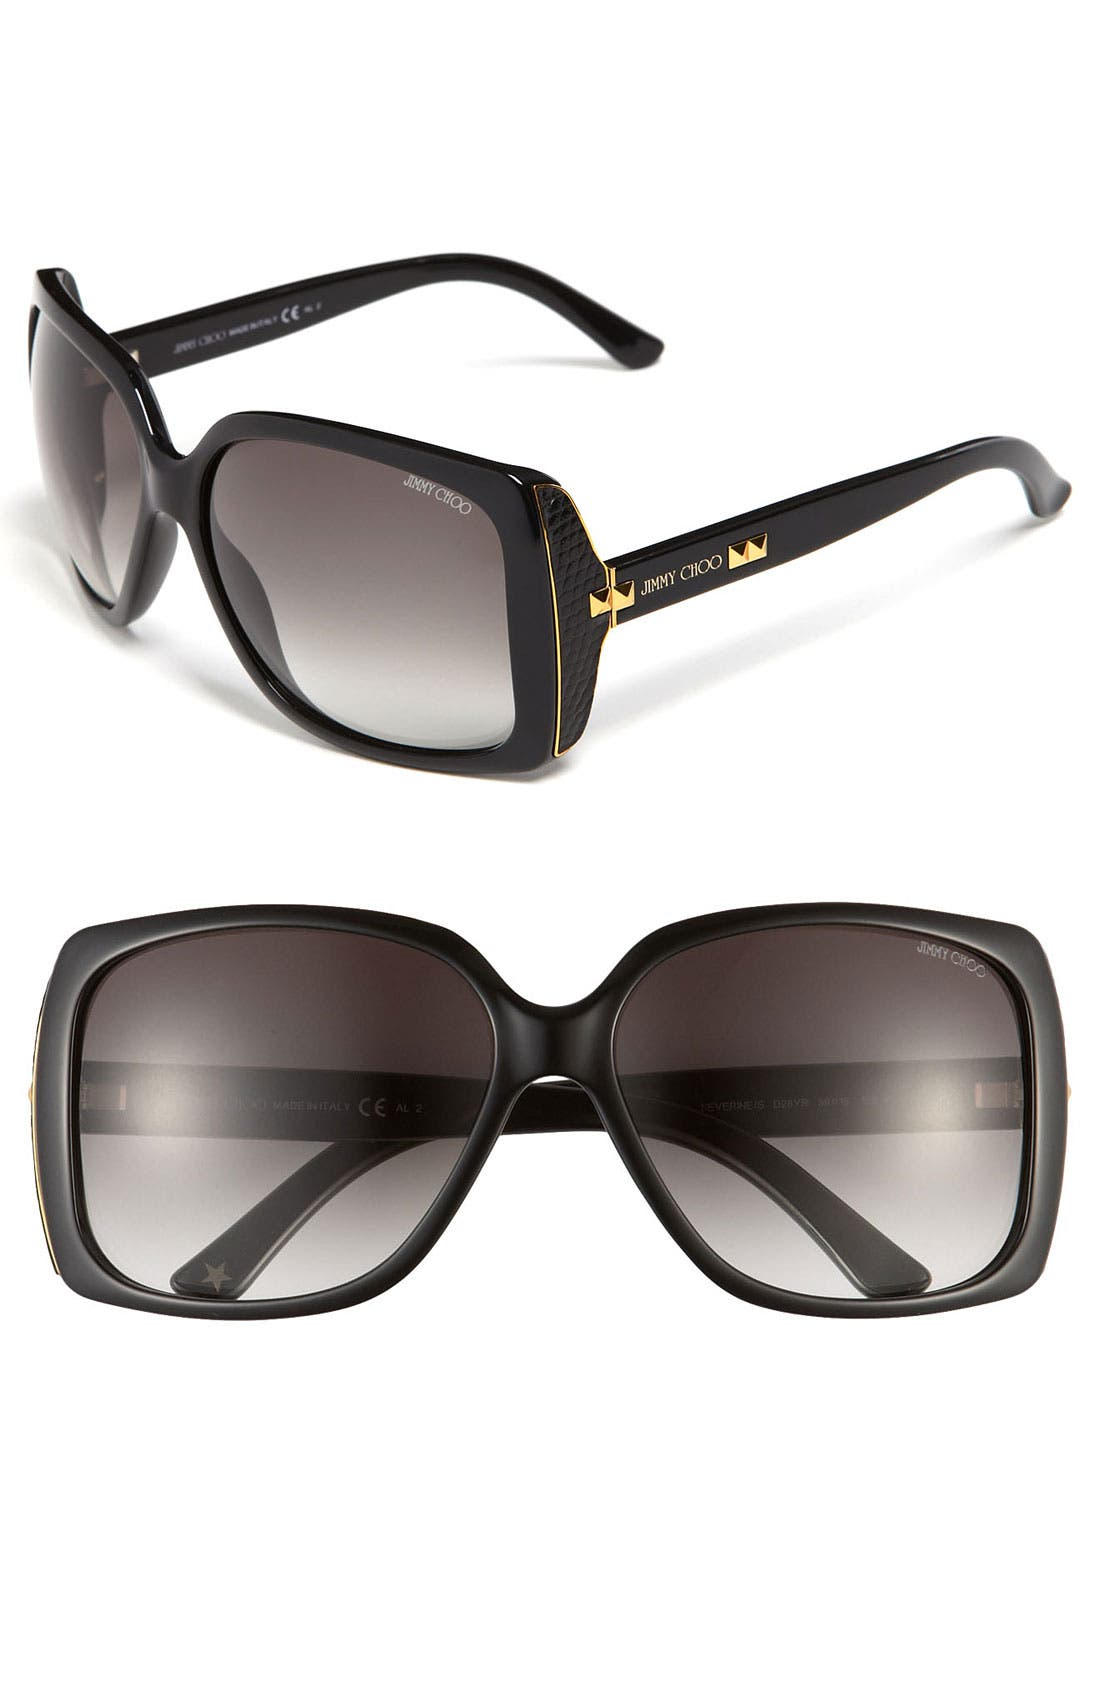 Alternate Image 1 Selected - Jimmy Choo 'Severine' Classic Sunglasses